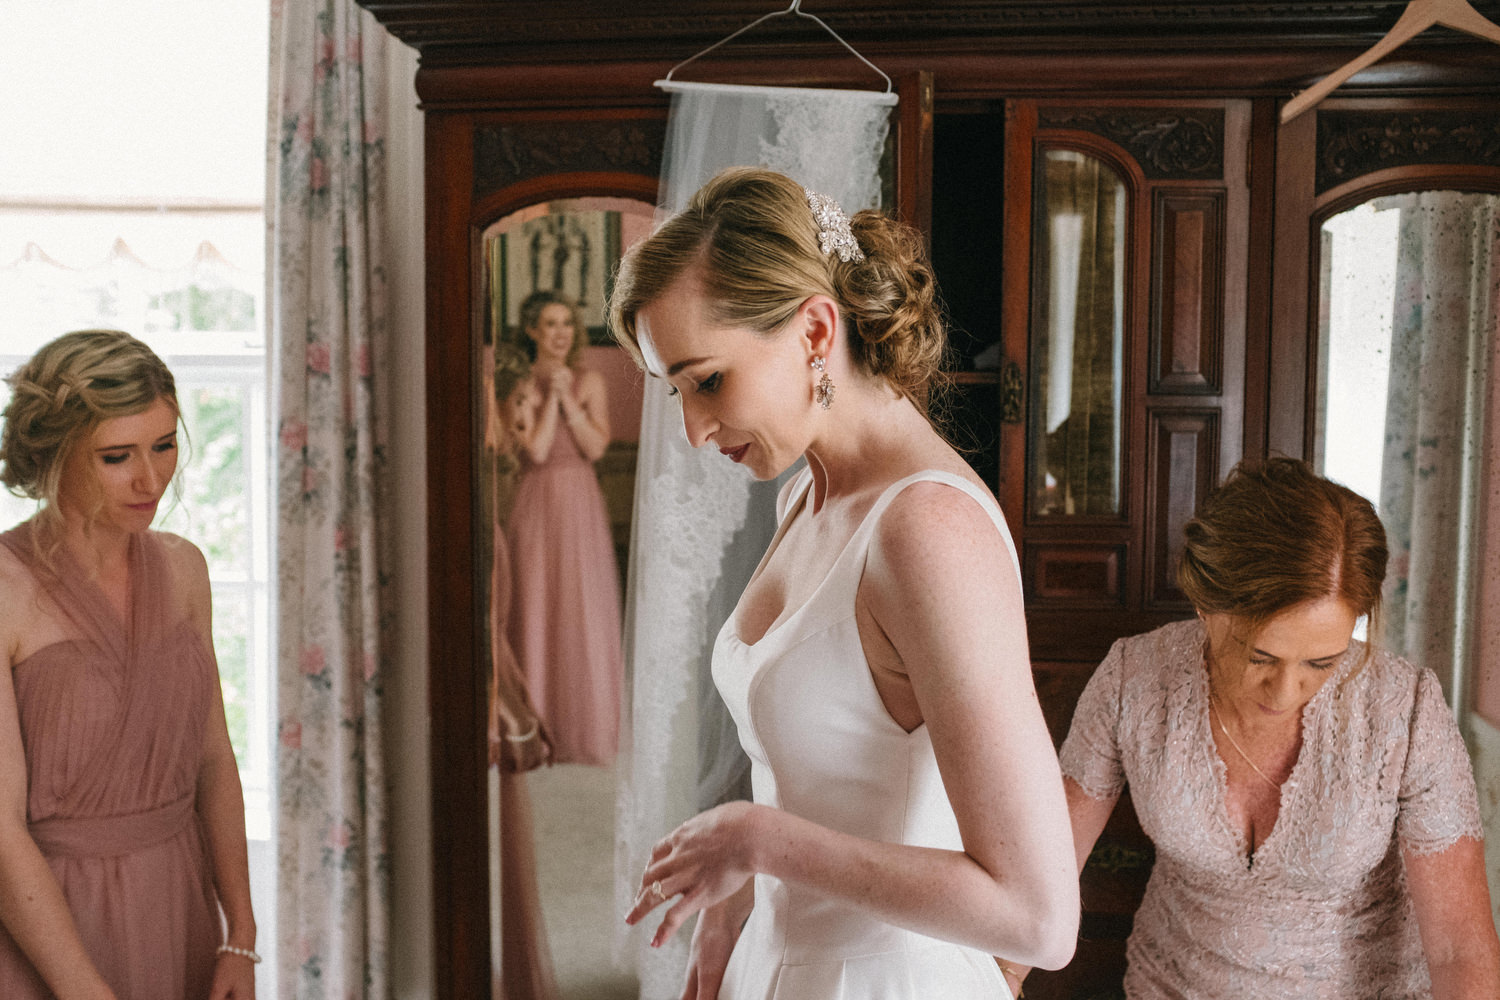 000000000000000000000074_bride_style_preparation_vintage_Hair_dress_photography_david_mcclelland_ireland_makeup_castle_hollywood_kinnity_wedding_photographer_fujifilm